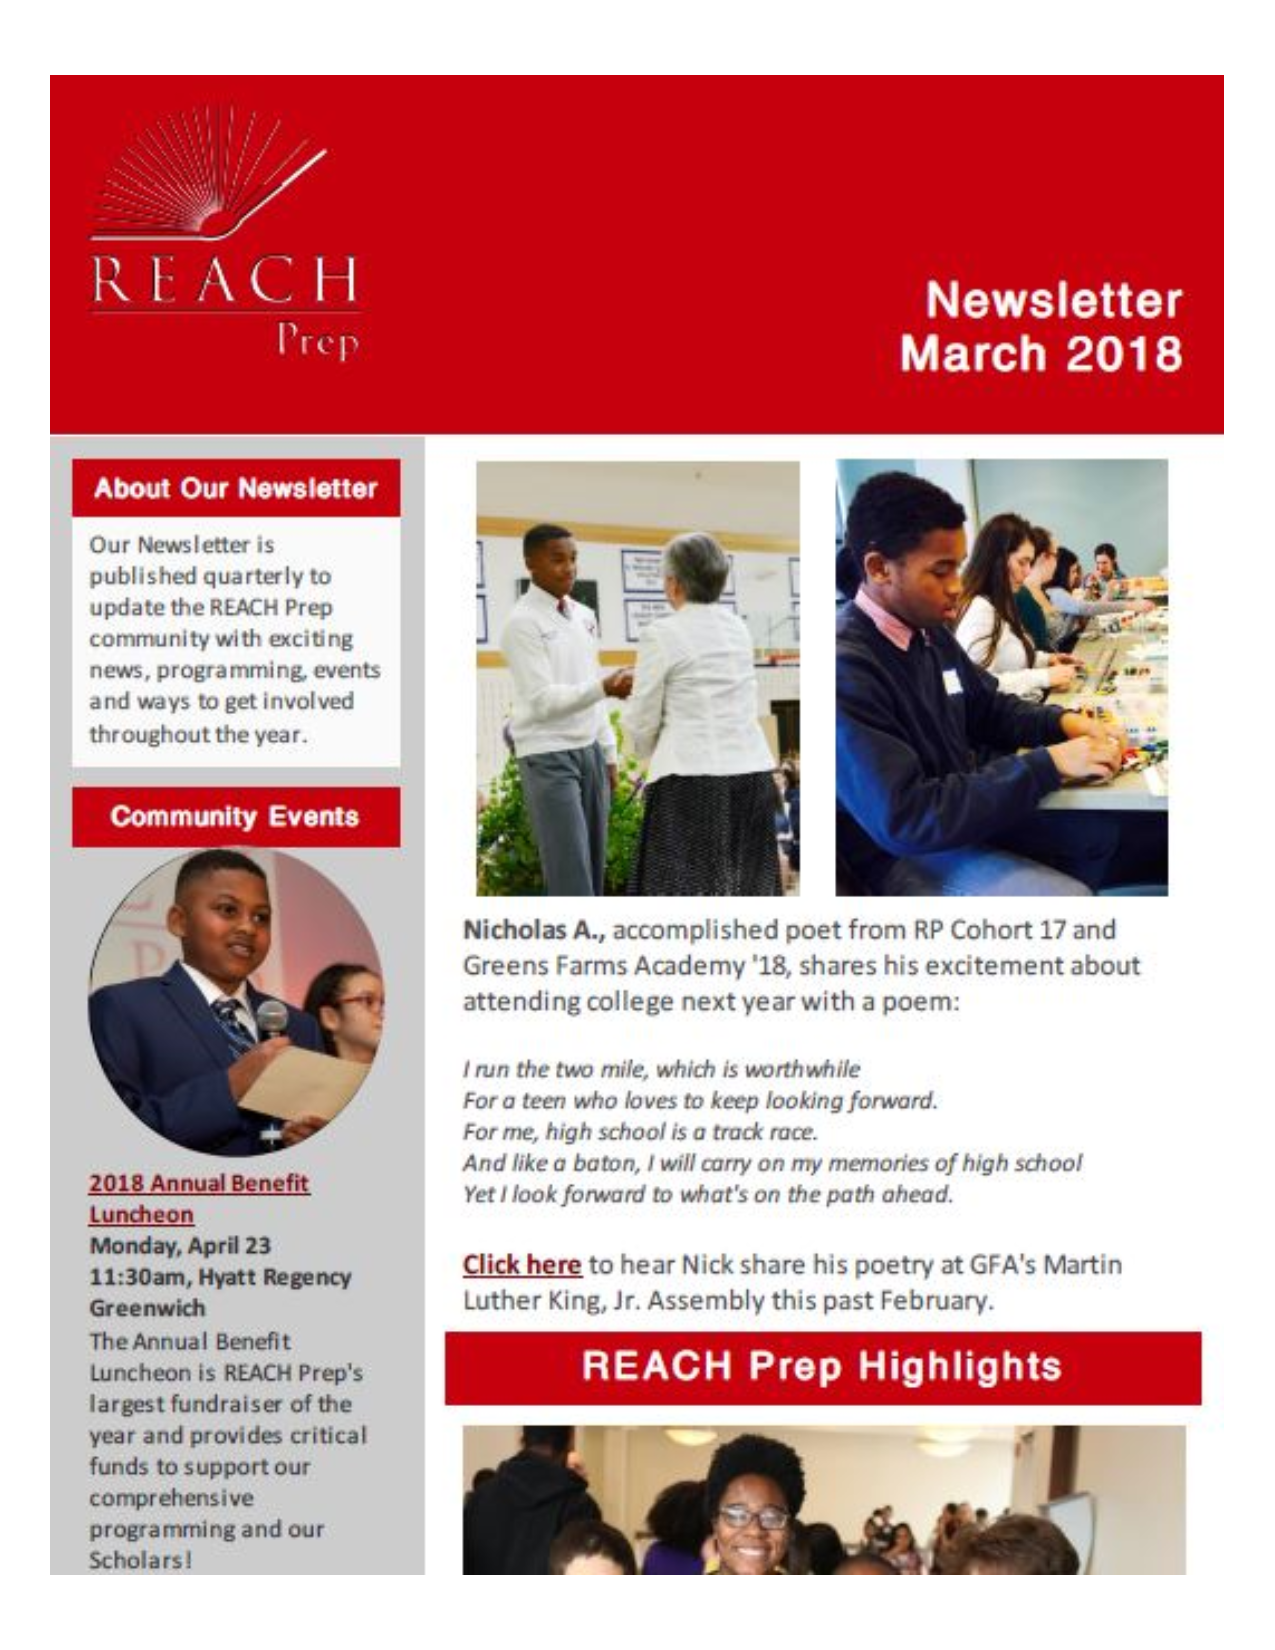 Newsletter: March 2018